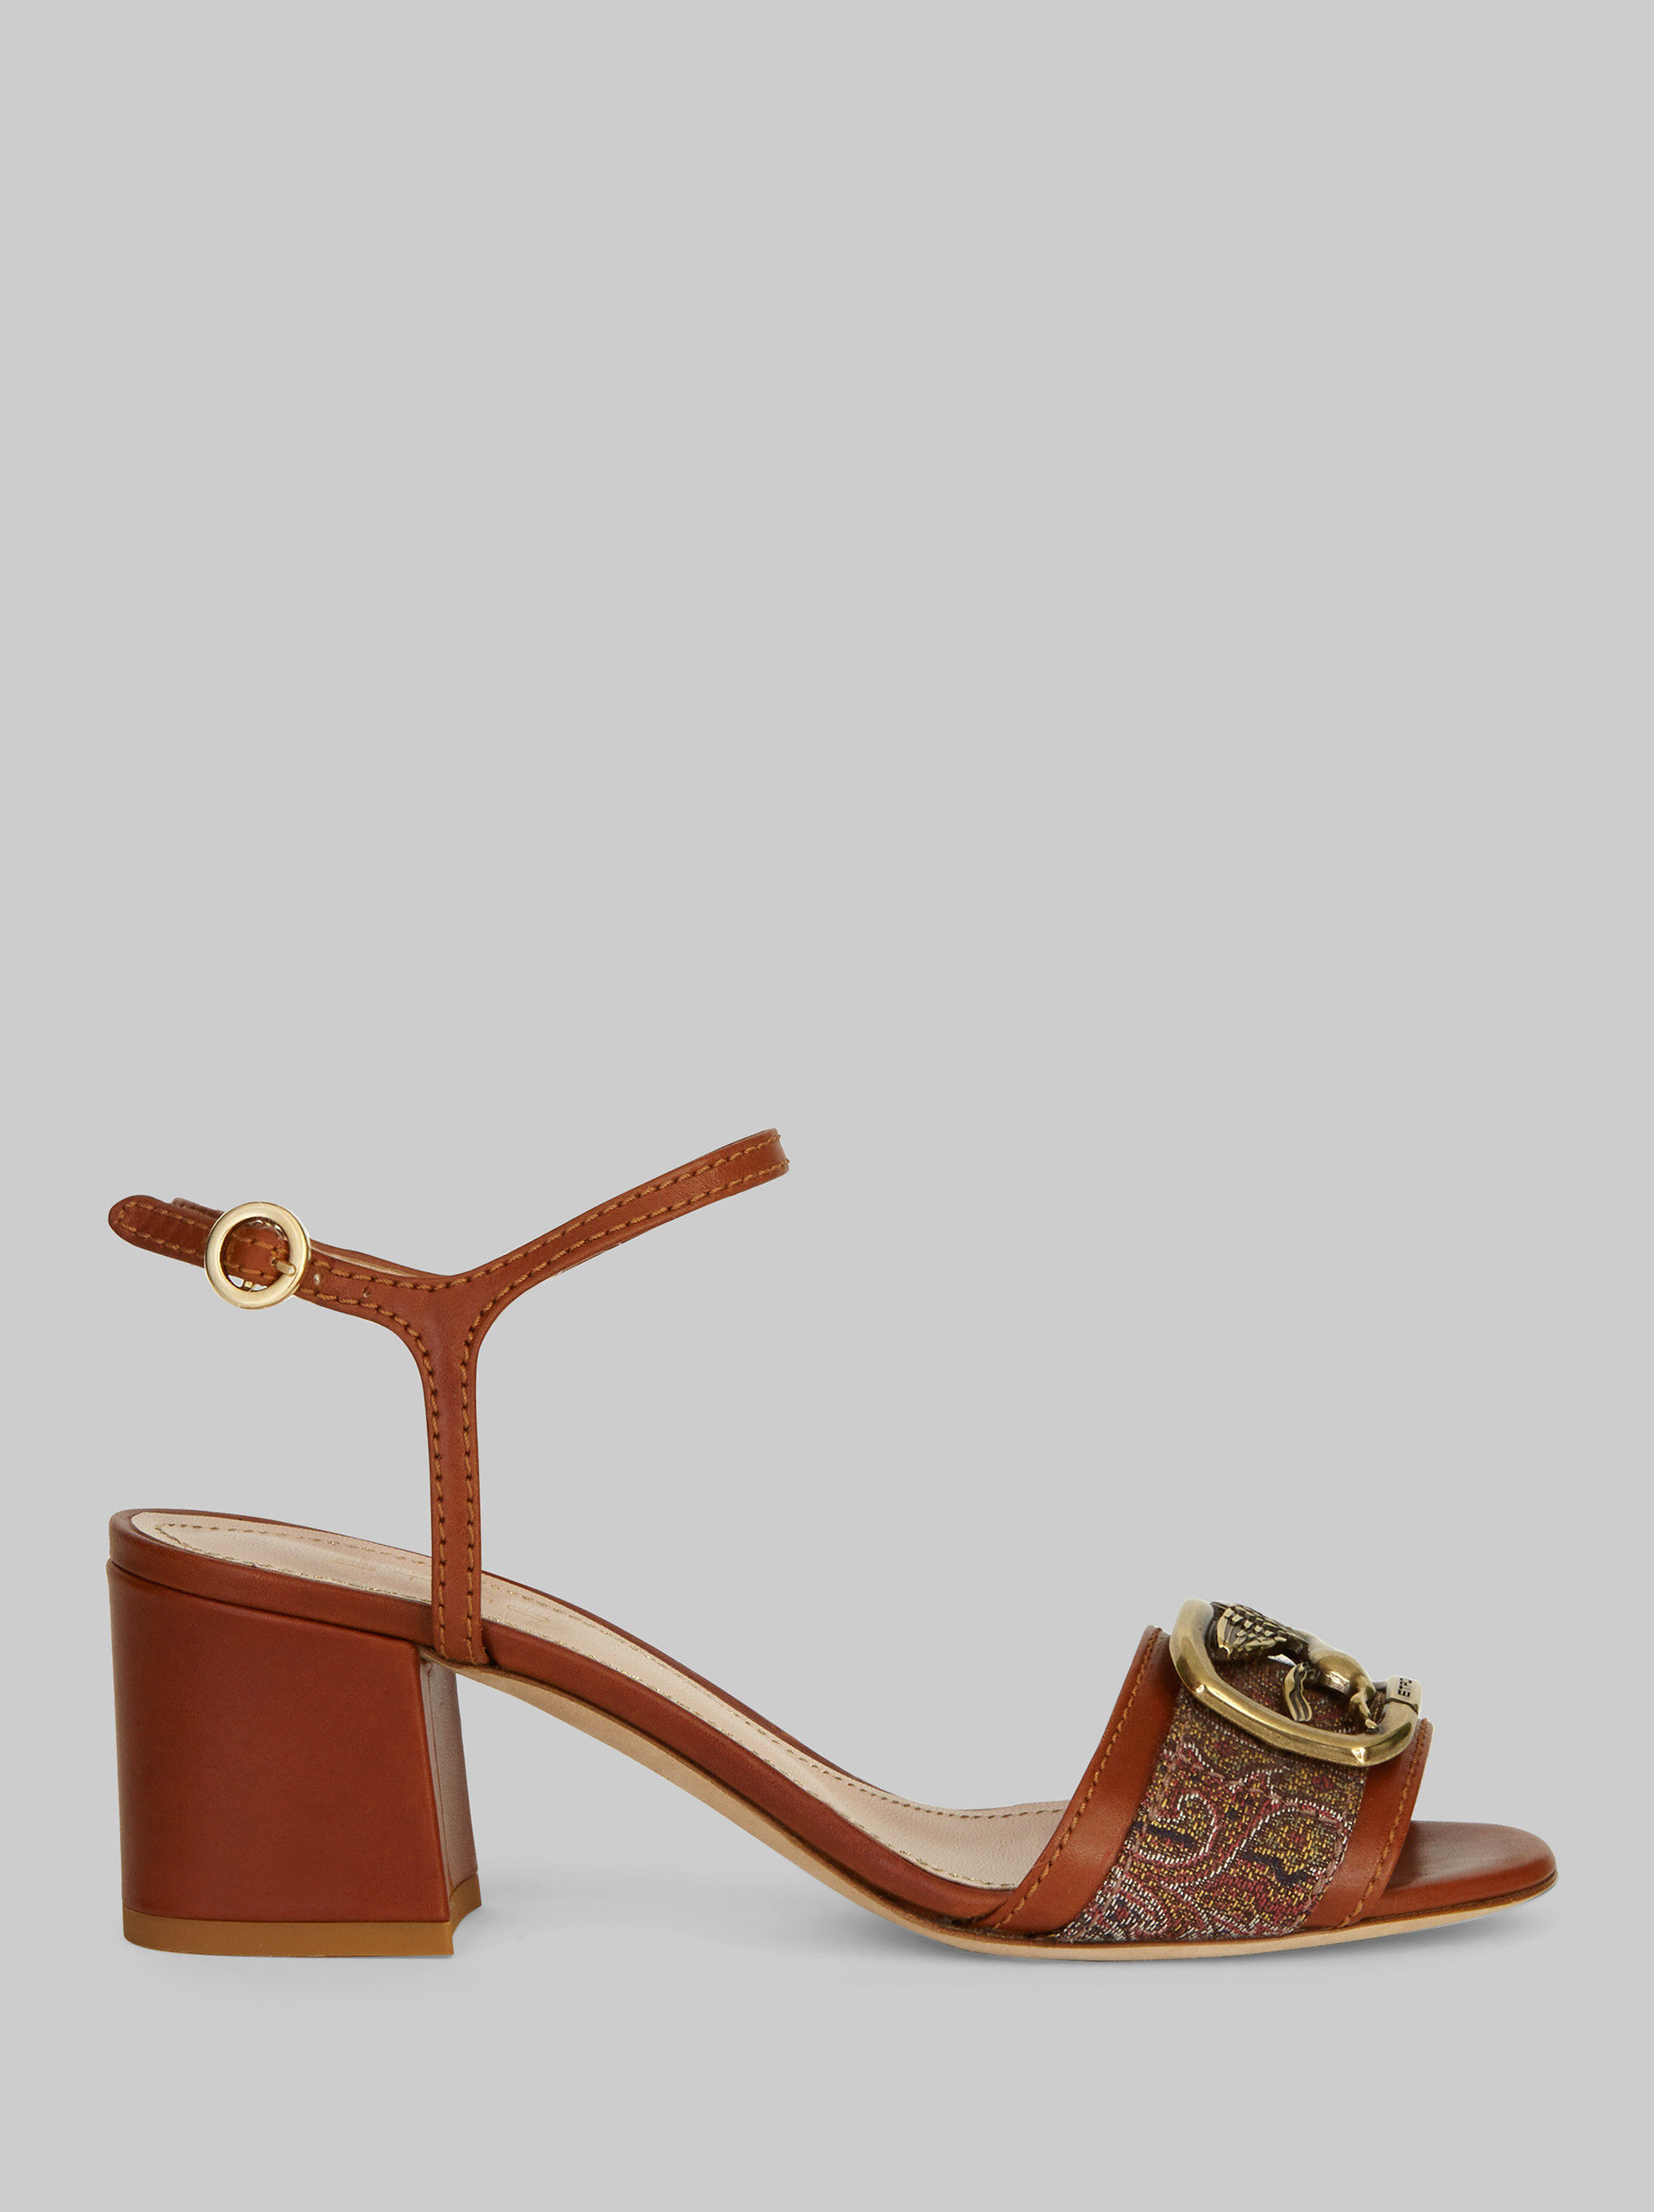 PEGASO SANDALS WITH PAISLEY PATTERNS